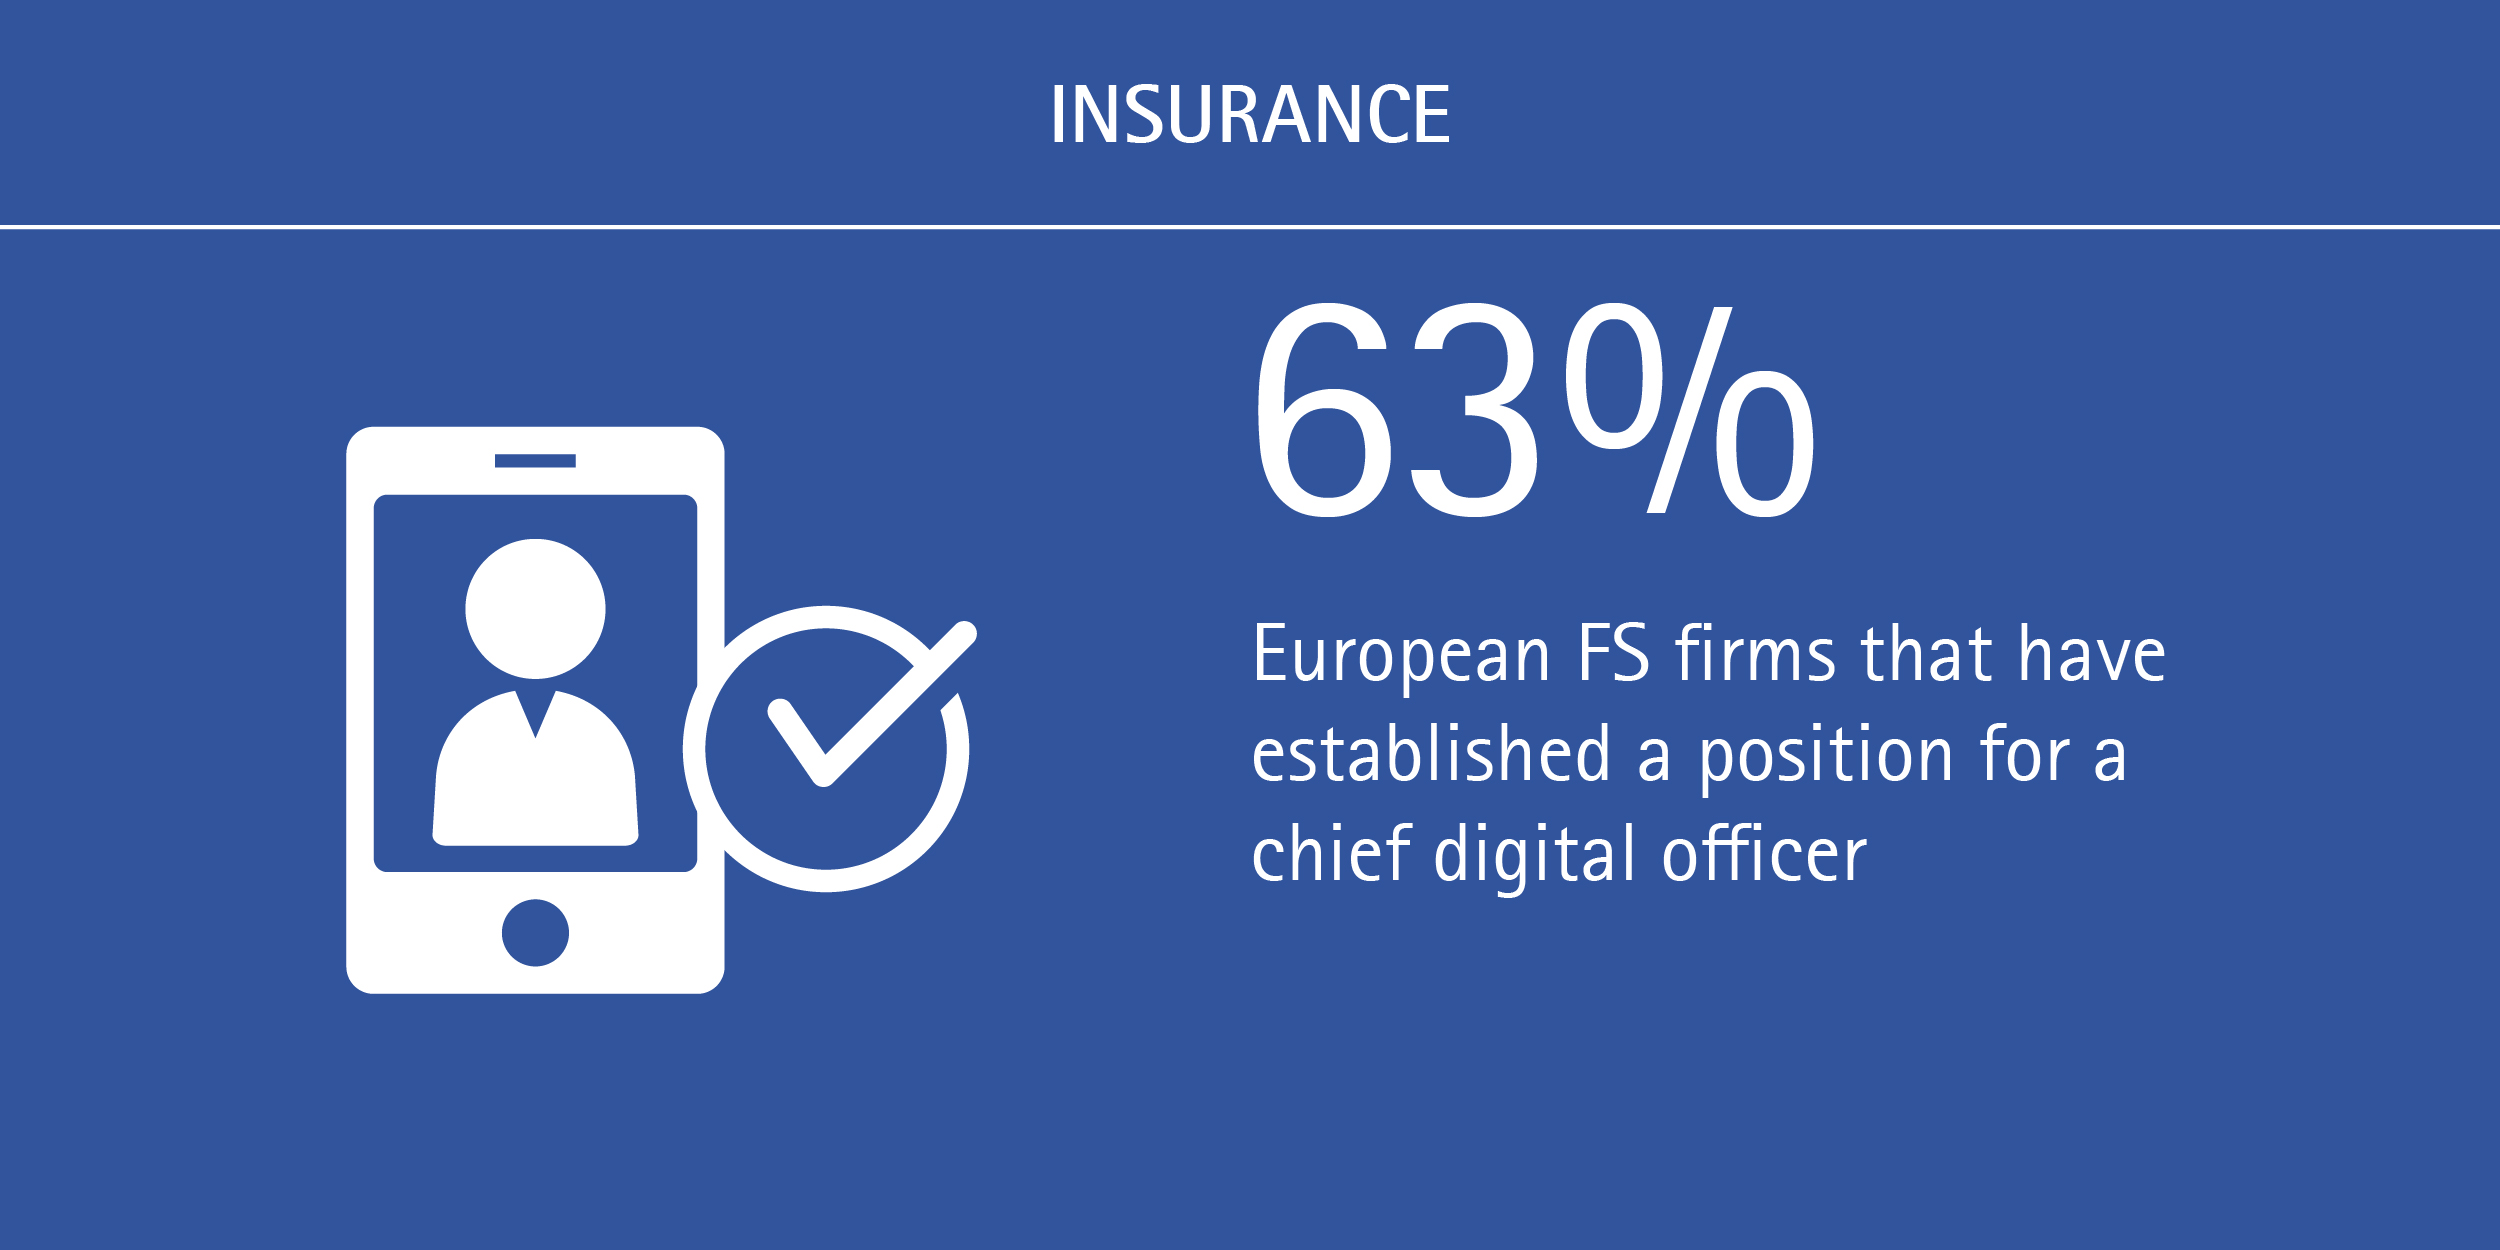 European insurers and banks have digital vision and strategy, but need to act_Accenture INS (FIgure 2)